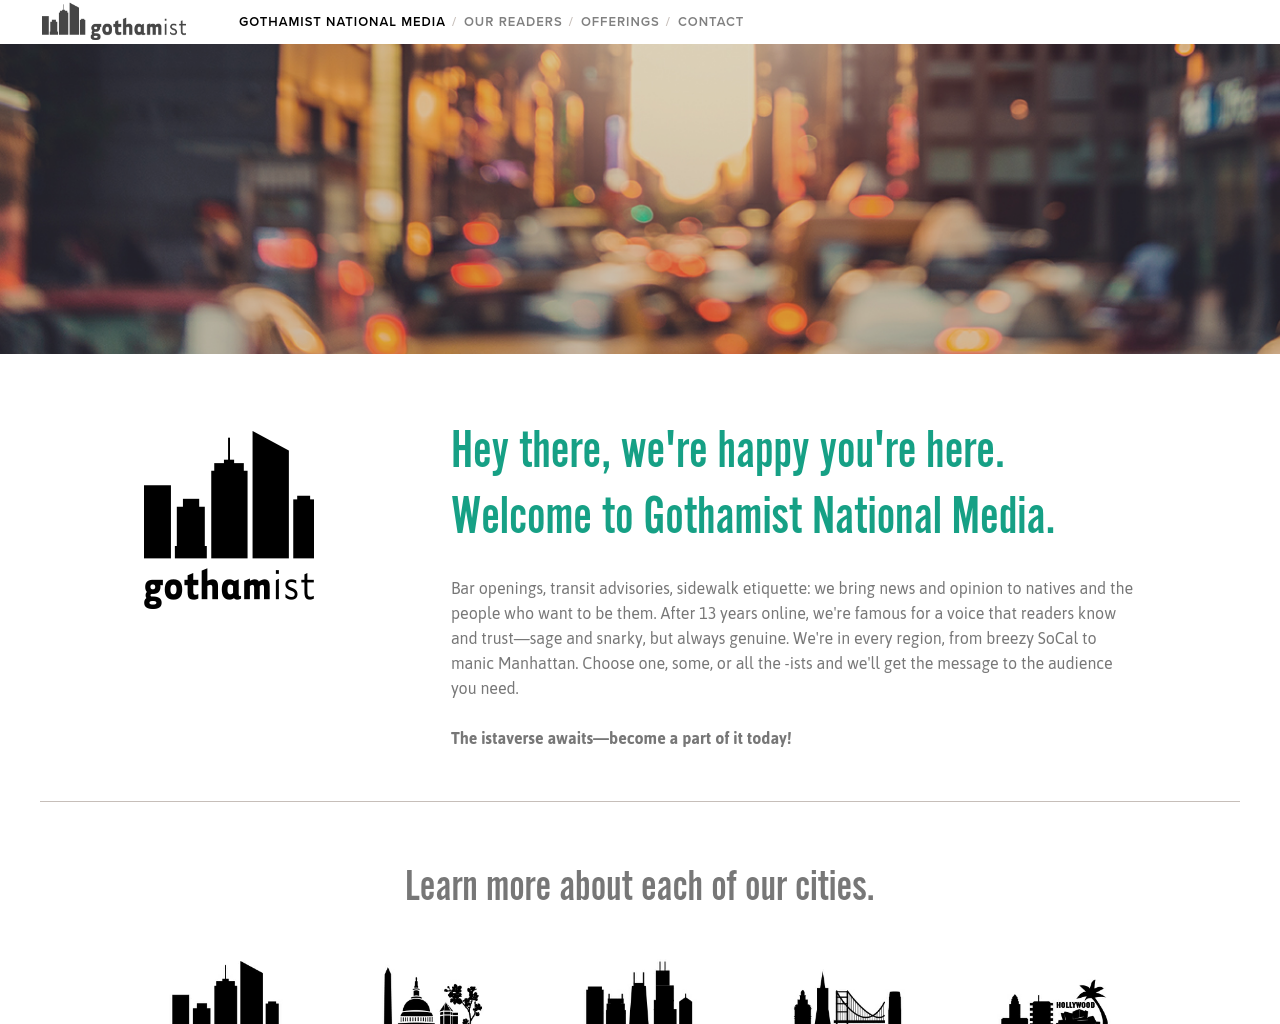 Gothamist-Advertising-Reviews-Pricing